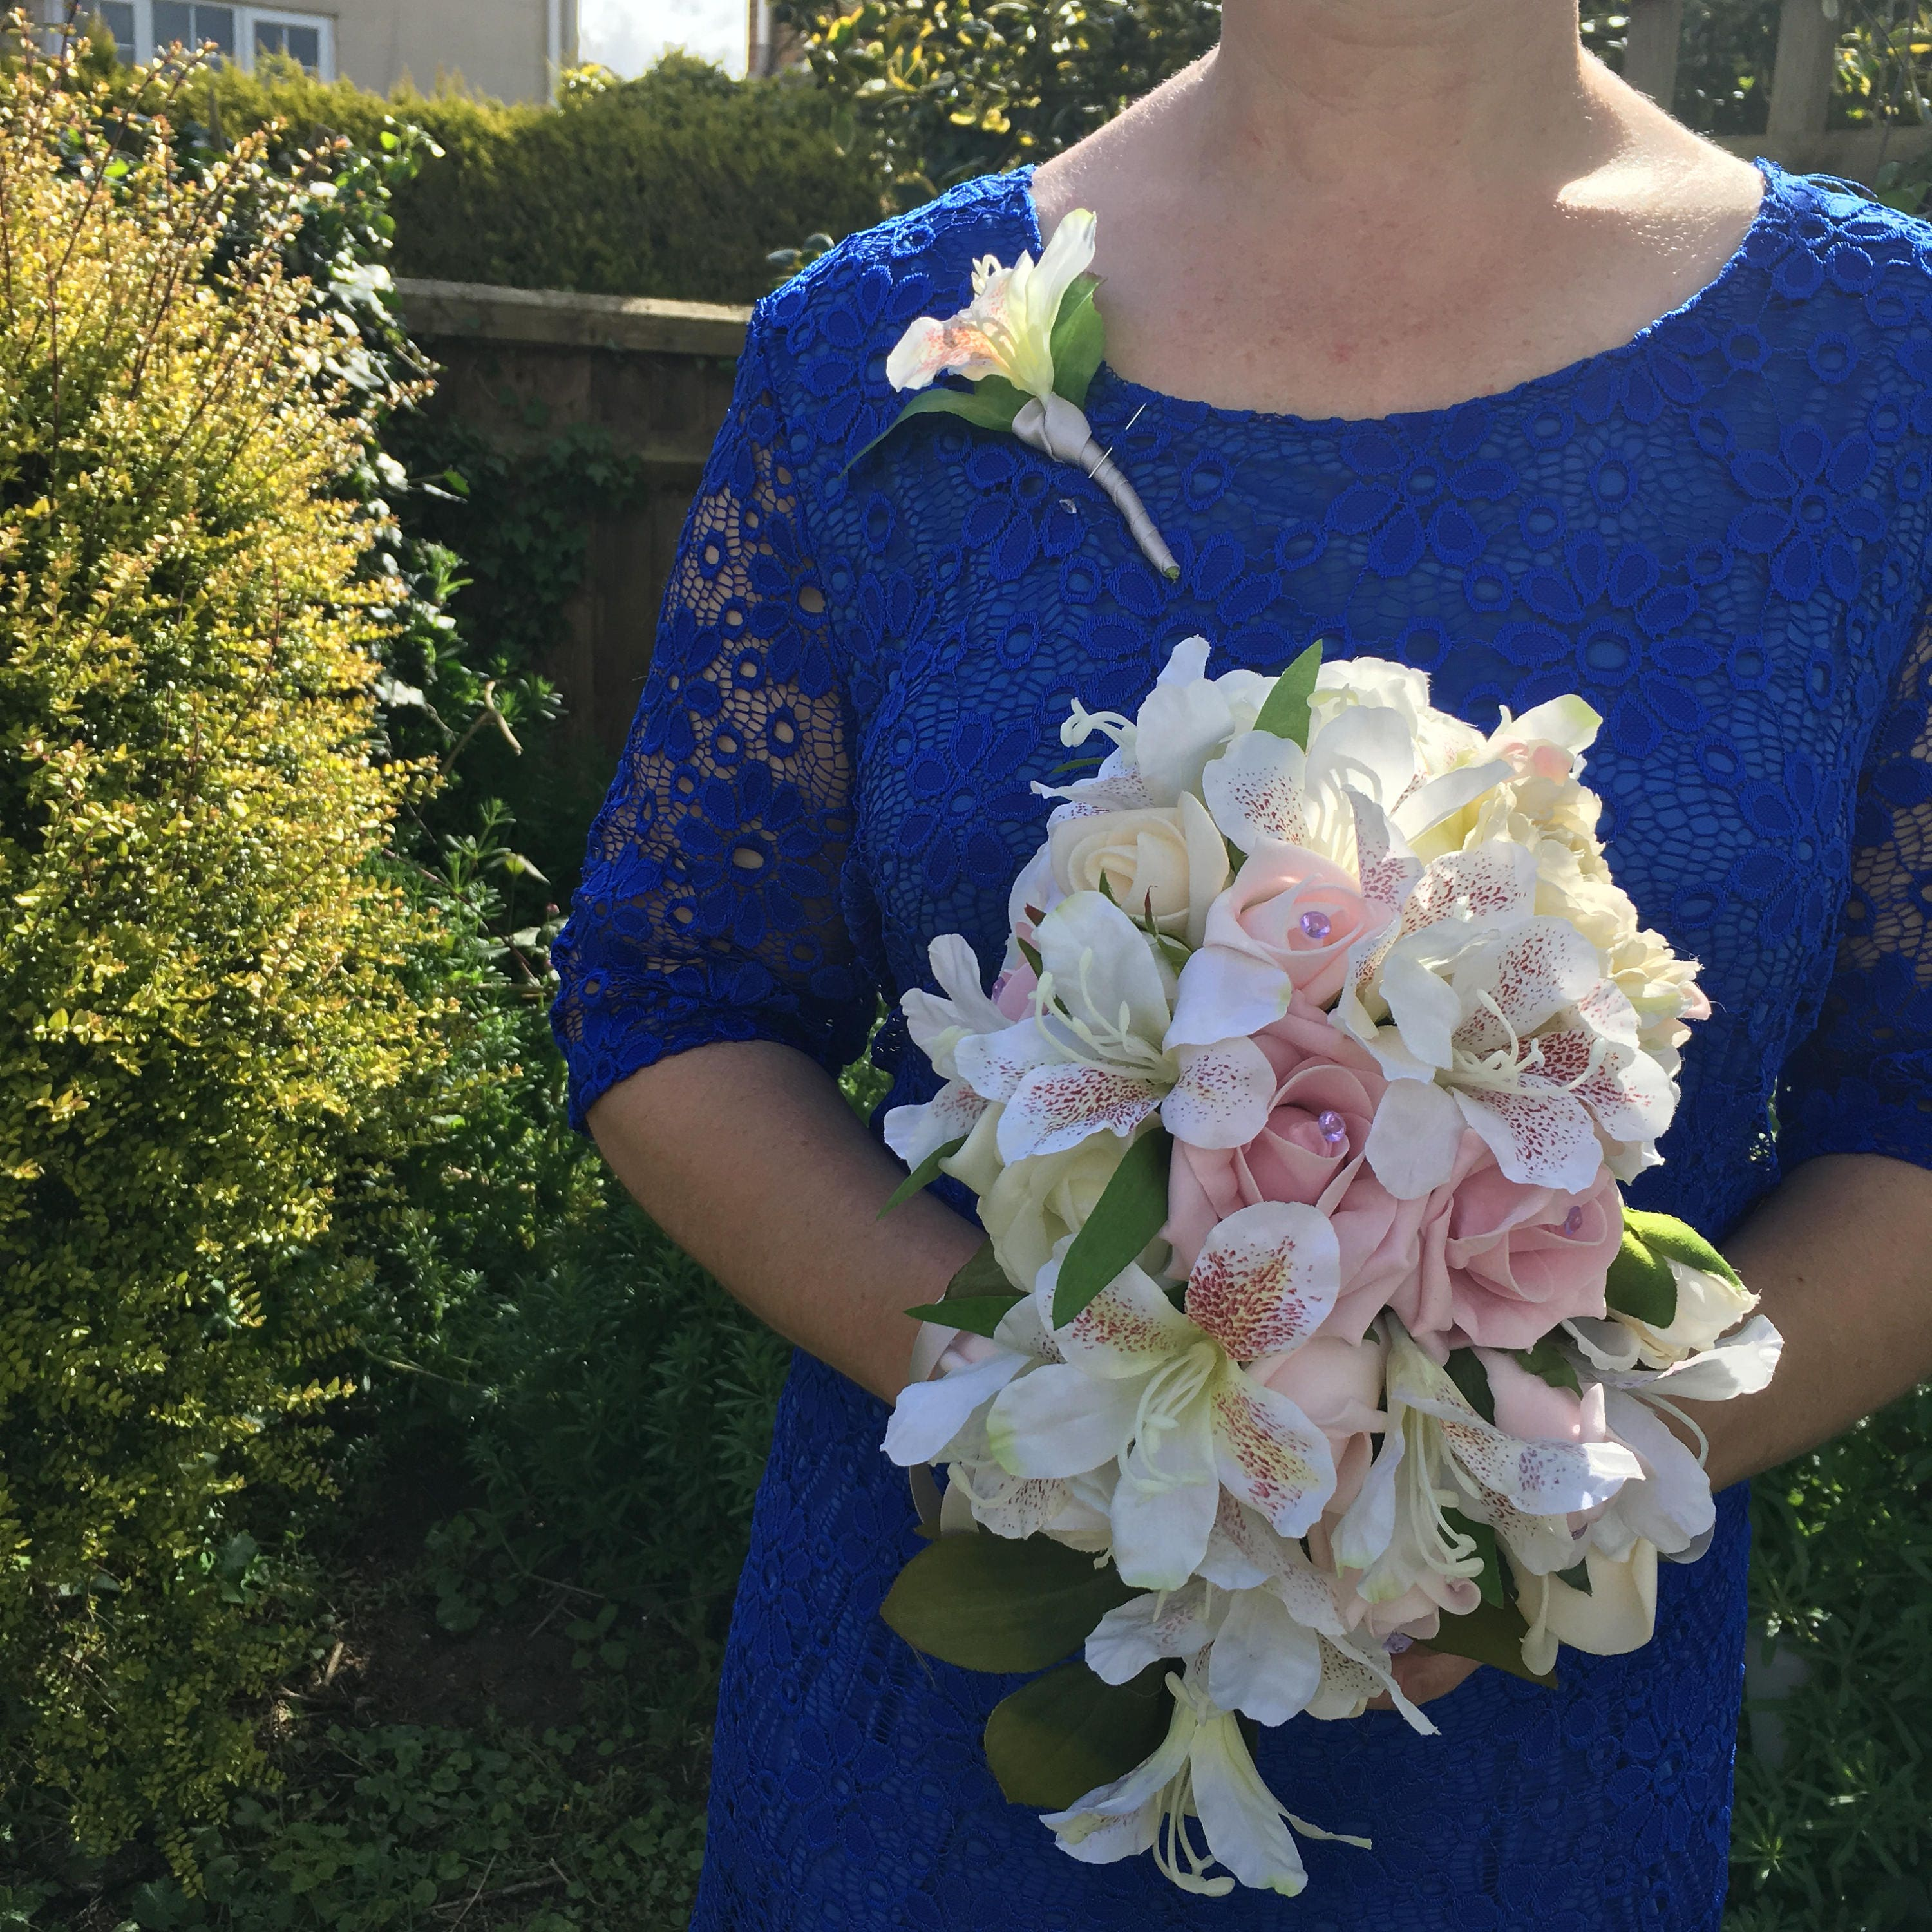 Rose and lily bouquetPink and white bouquetWedding bouquet pink rosesAlstromeria bouquetbridal bouquet pink and whitesoft pink bouquet